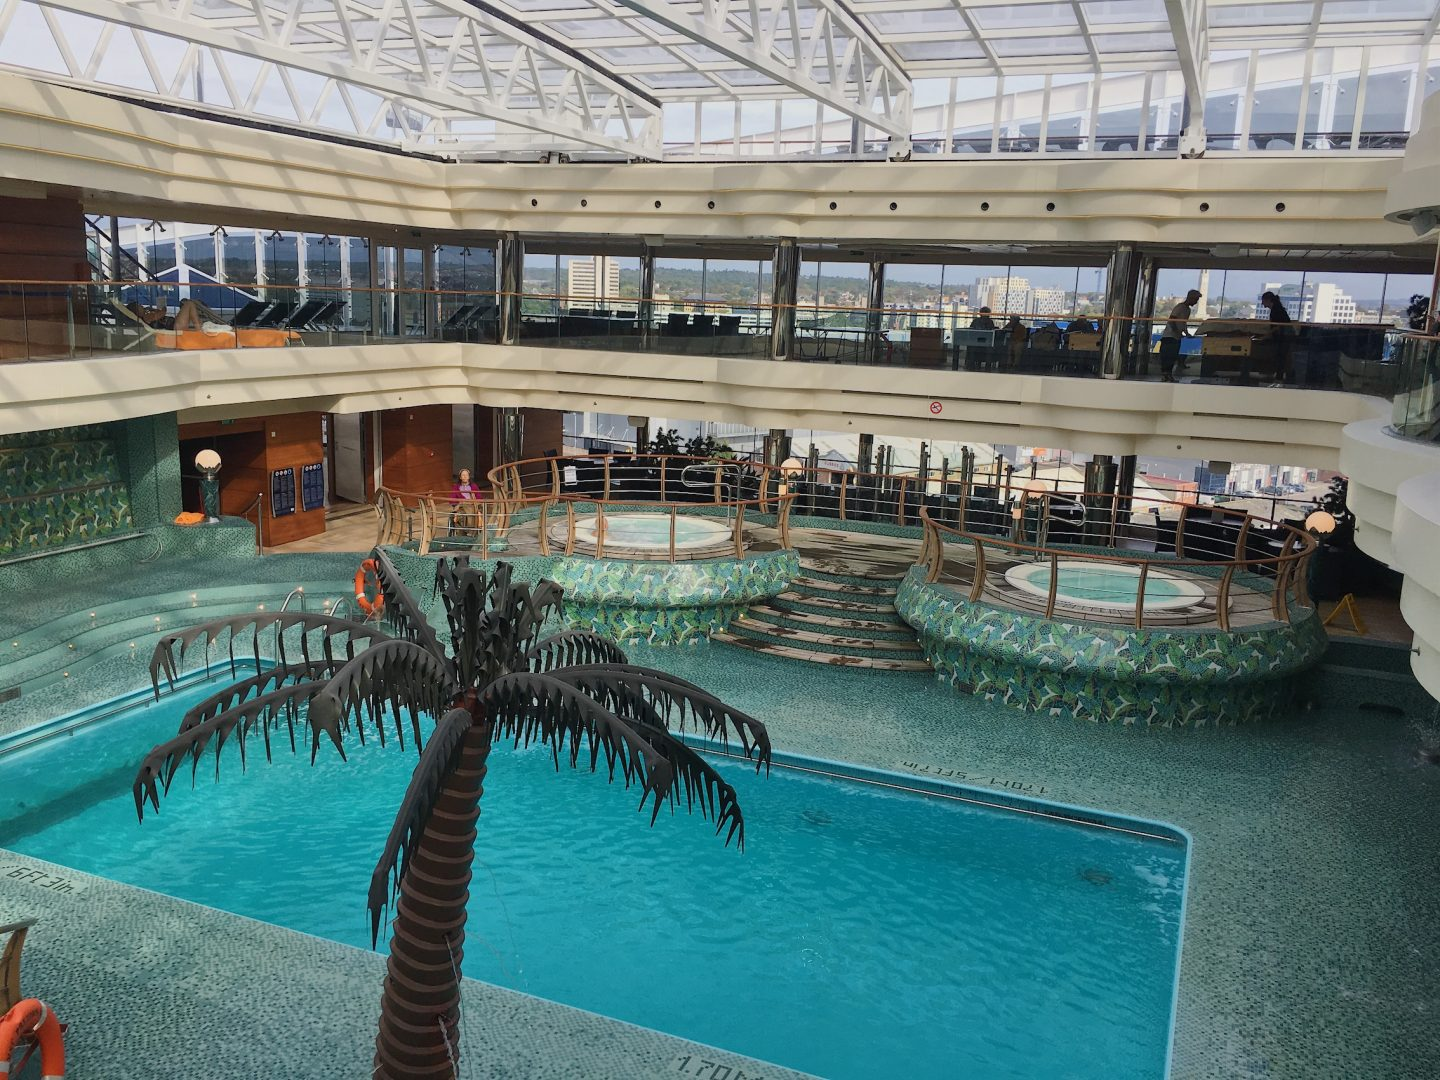 Indoor Swimming pool, MSC Preziosa cruise ship